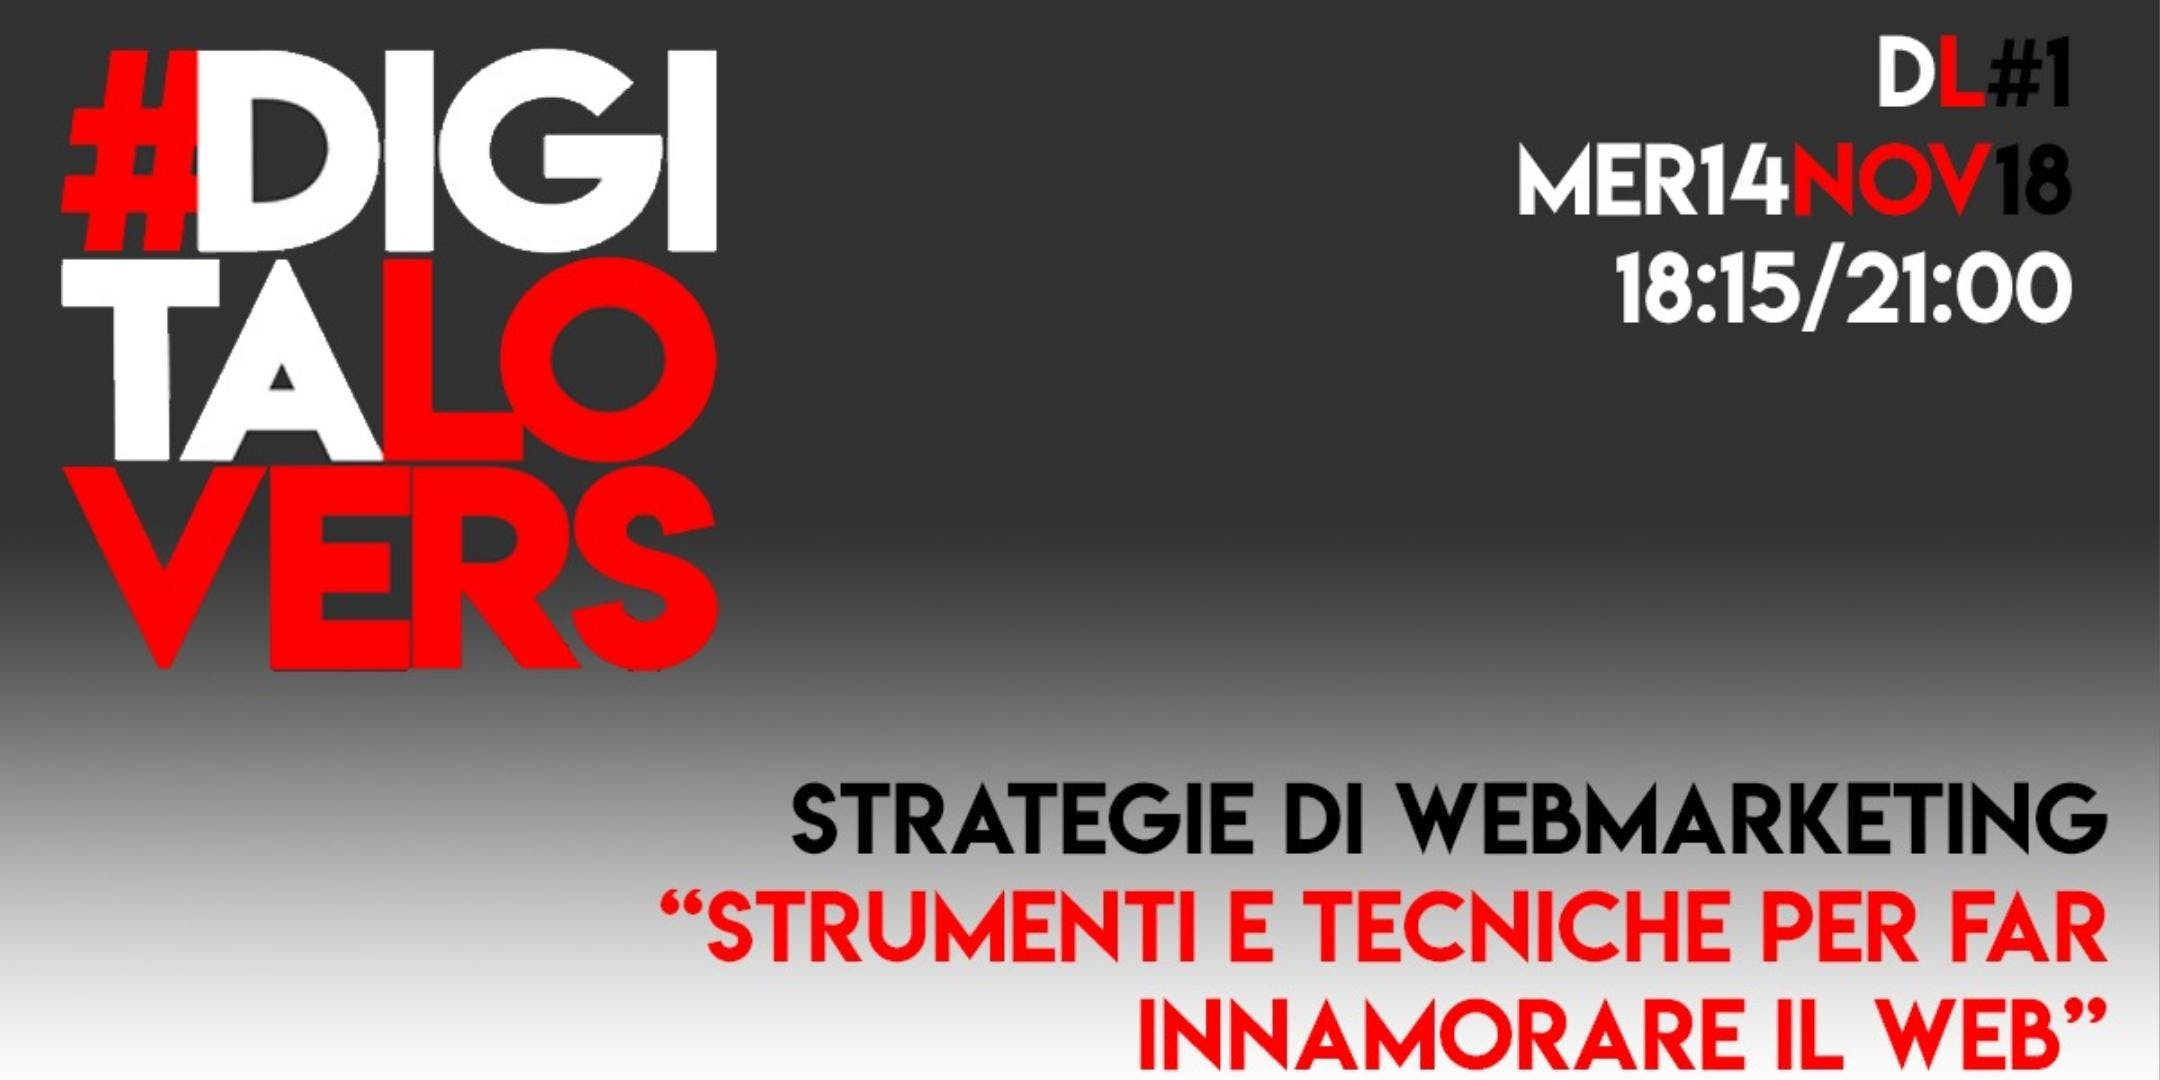 Strategia di web marketing - Strumenti e tecn